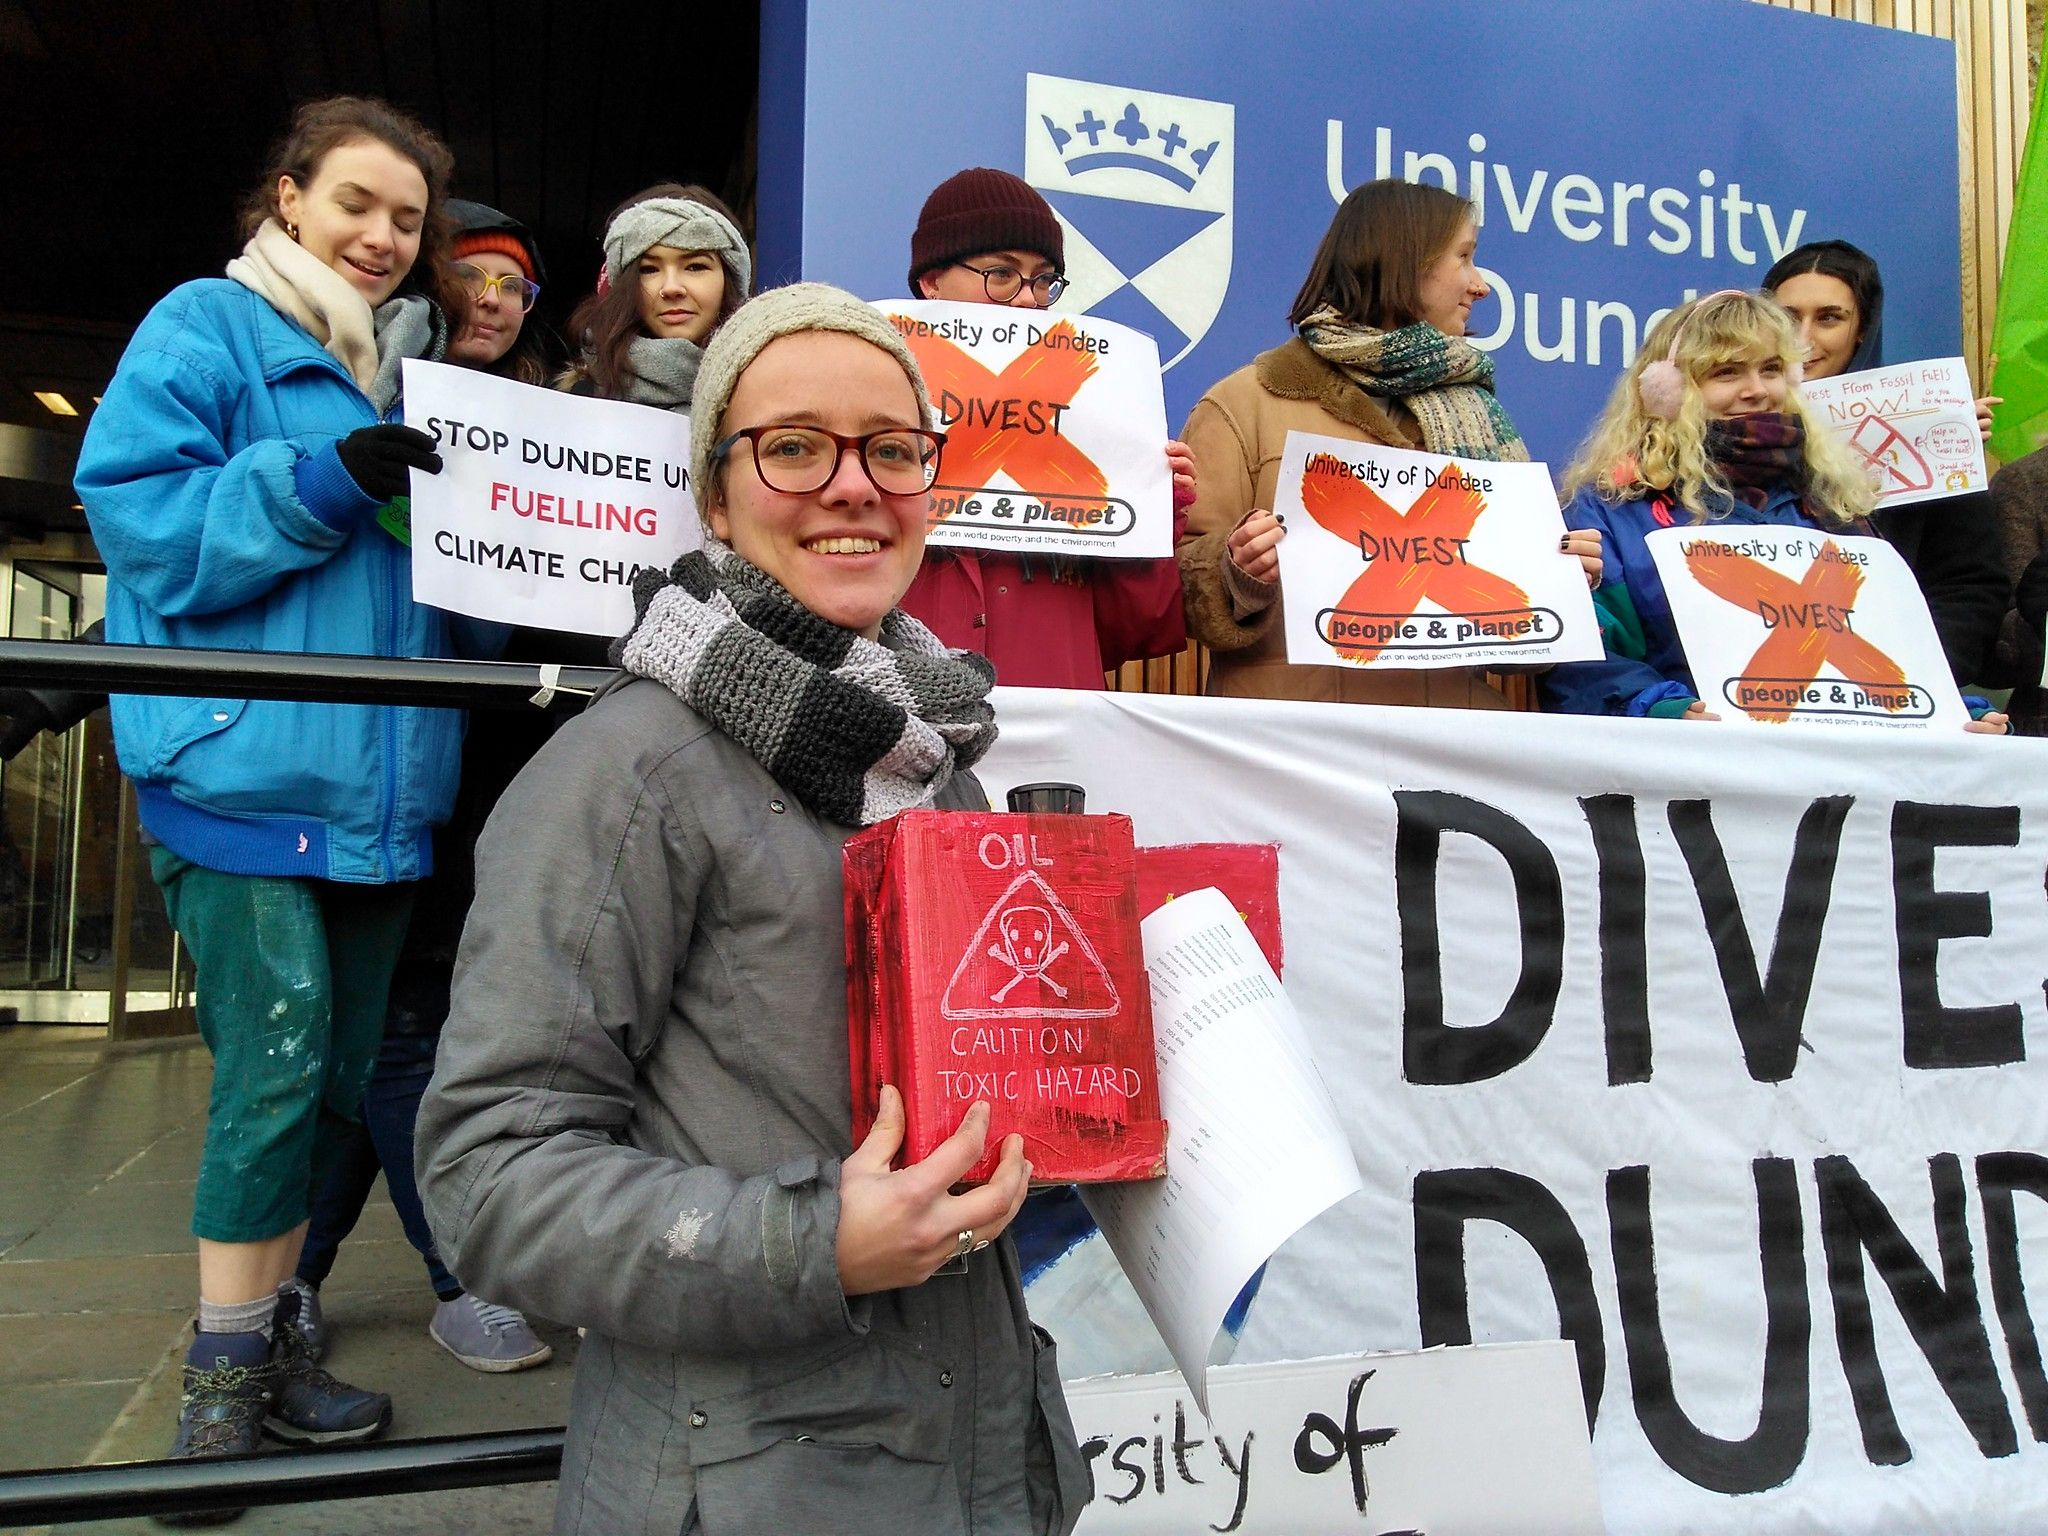 Students hold placards reading 'University of Dundee Divest - People & Planet' and Stop Fundee Uni Fuelling Climate Change'.